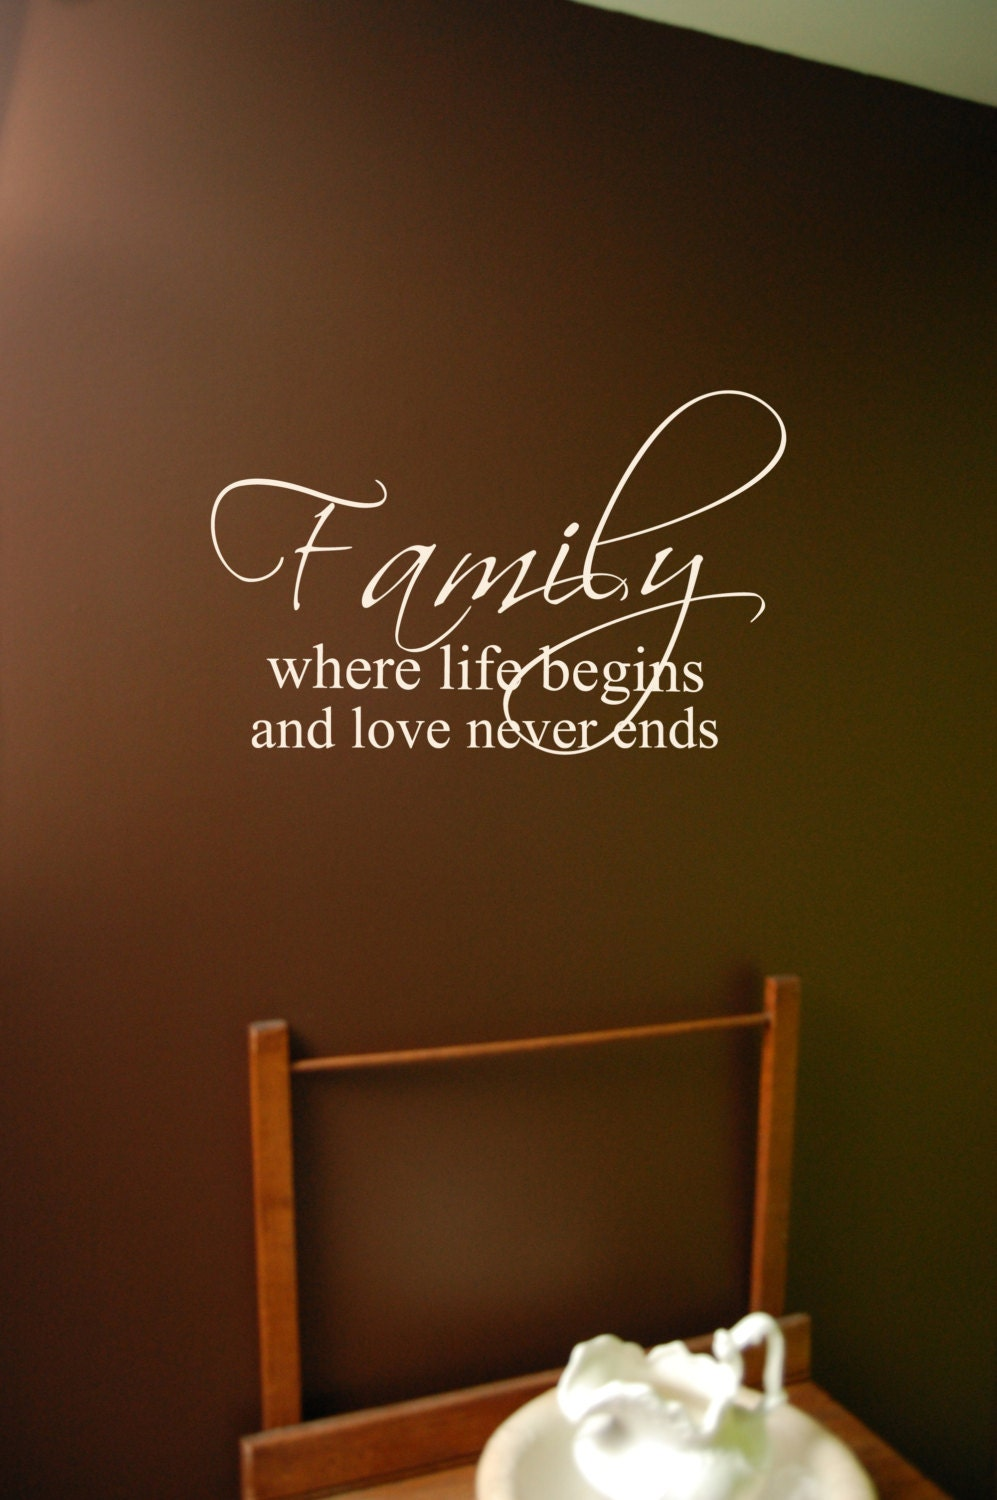 family wall decal bible verse decal laundry room decal